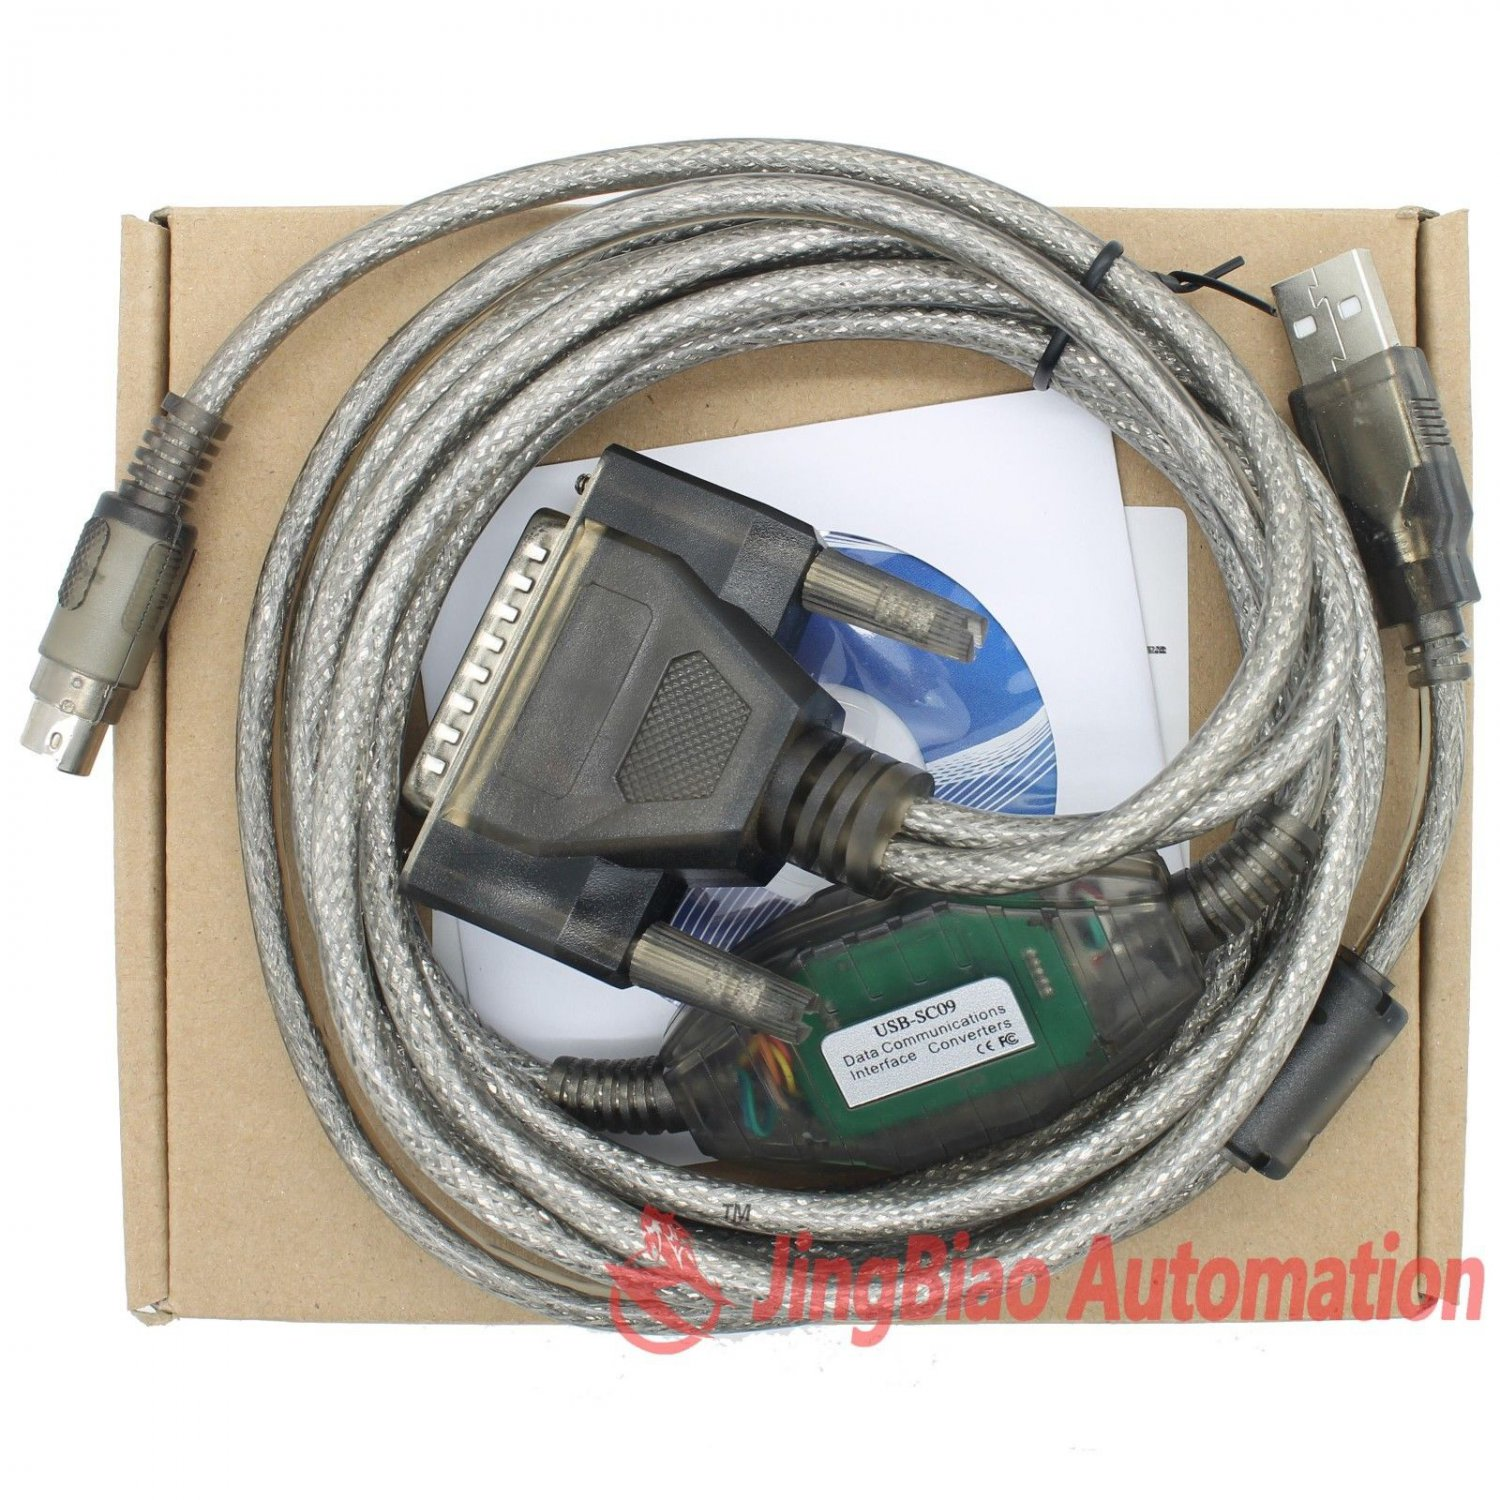 USB-SC09 Programming Cable for Mitsubishi MELSEC FX & A series PLC Support WIN7